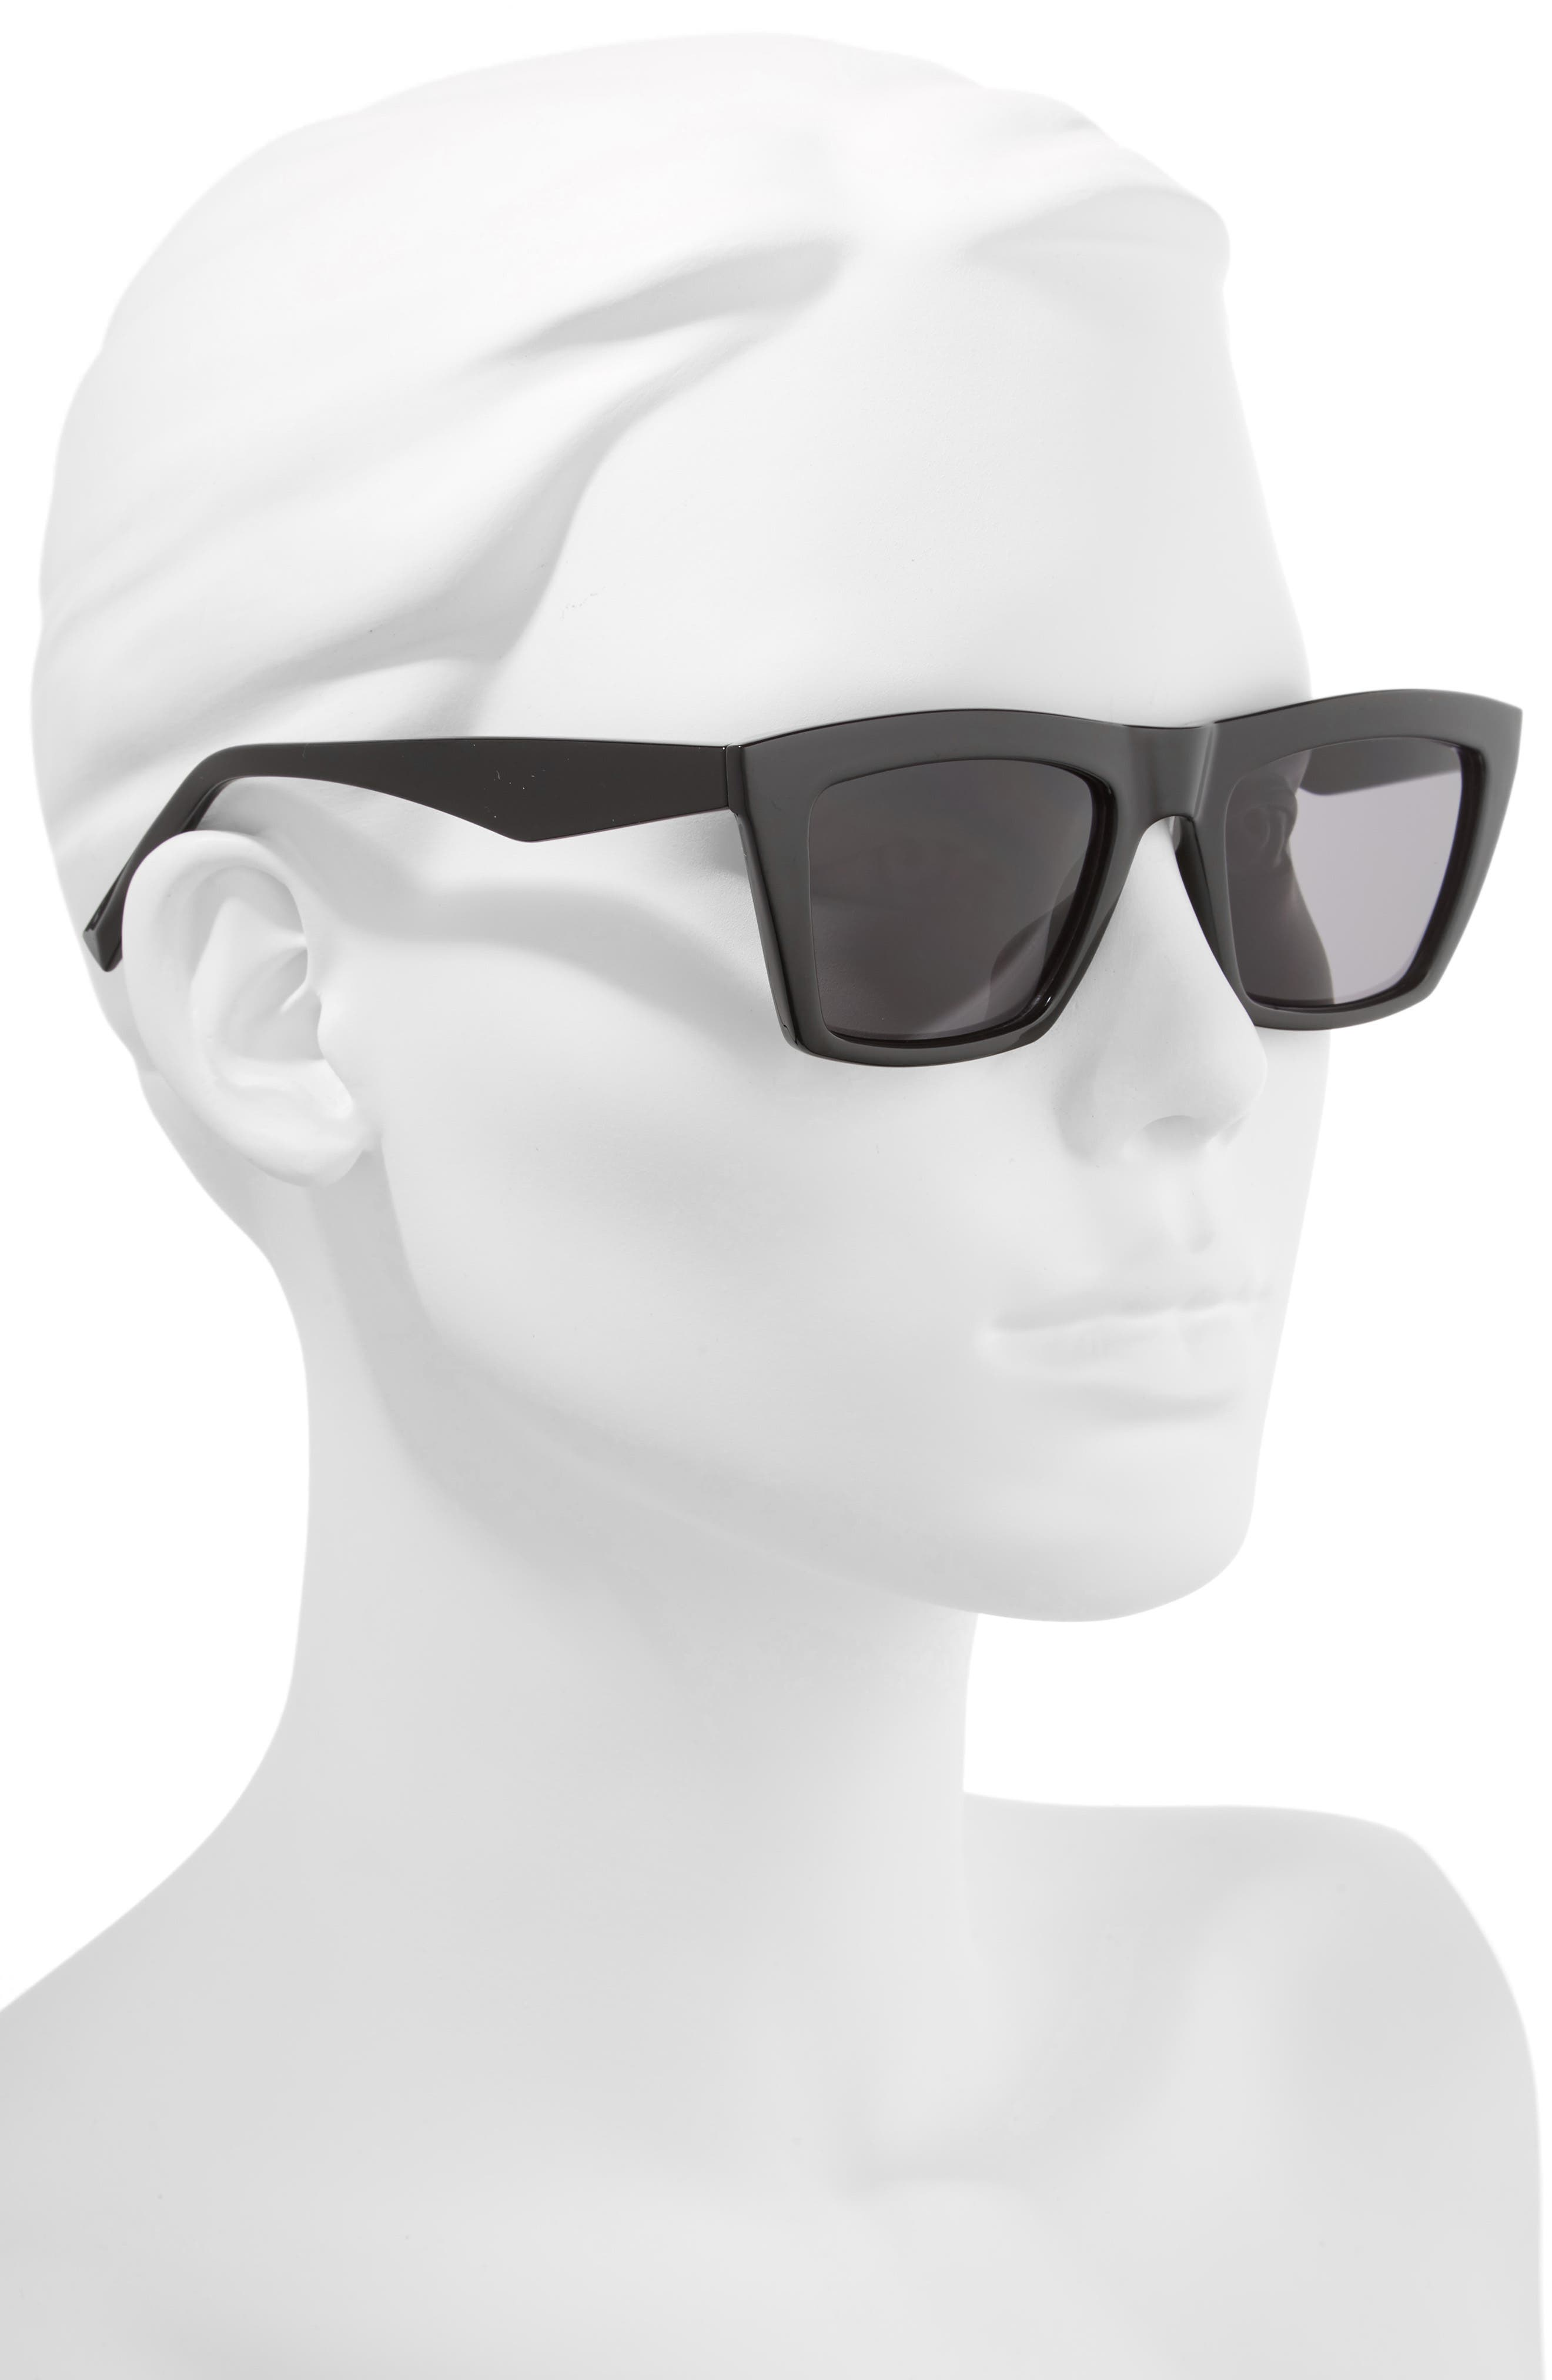 Kamilla 53mm Square Sunglasses,                             Alternate thumbnail 2, color,                             BLACK/ SOLID SMOKE